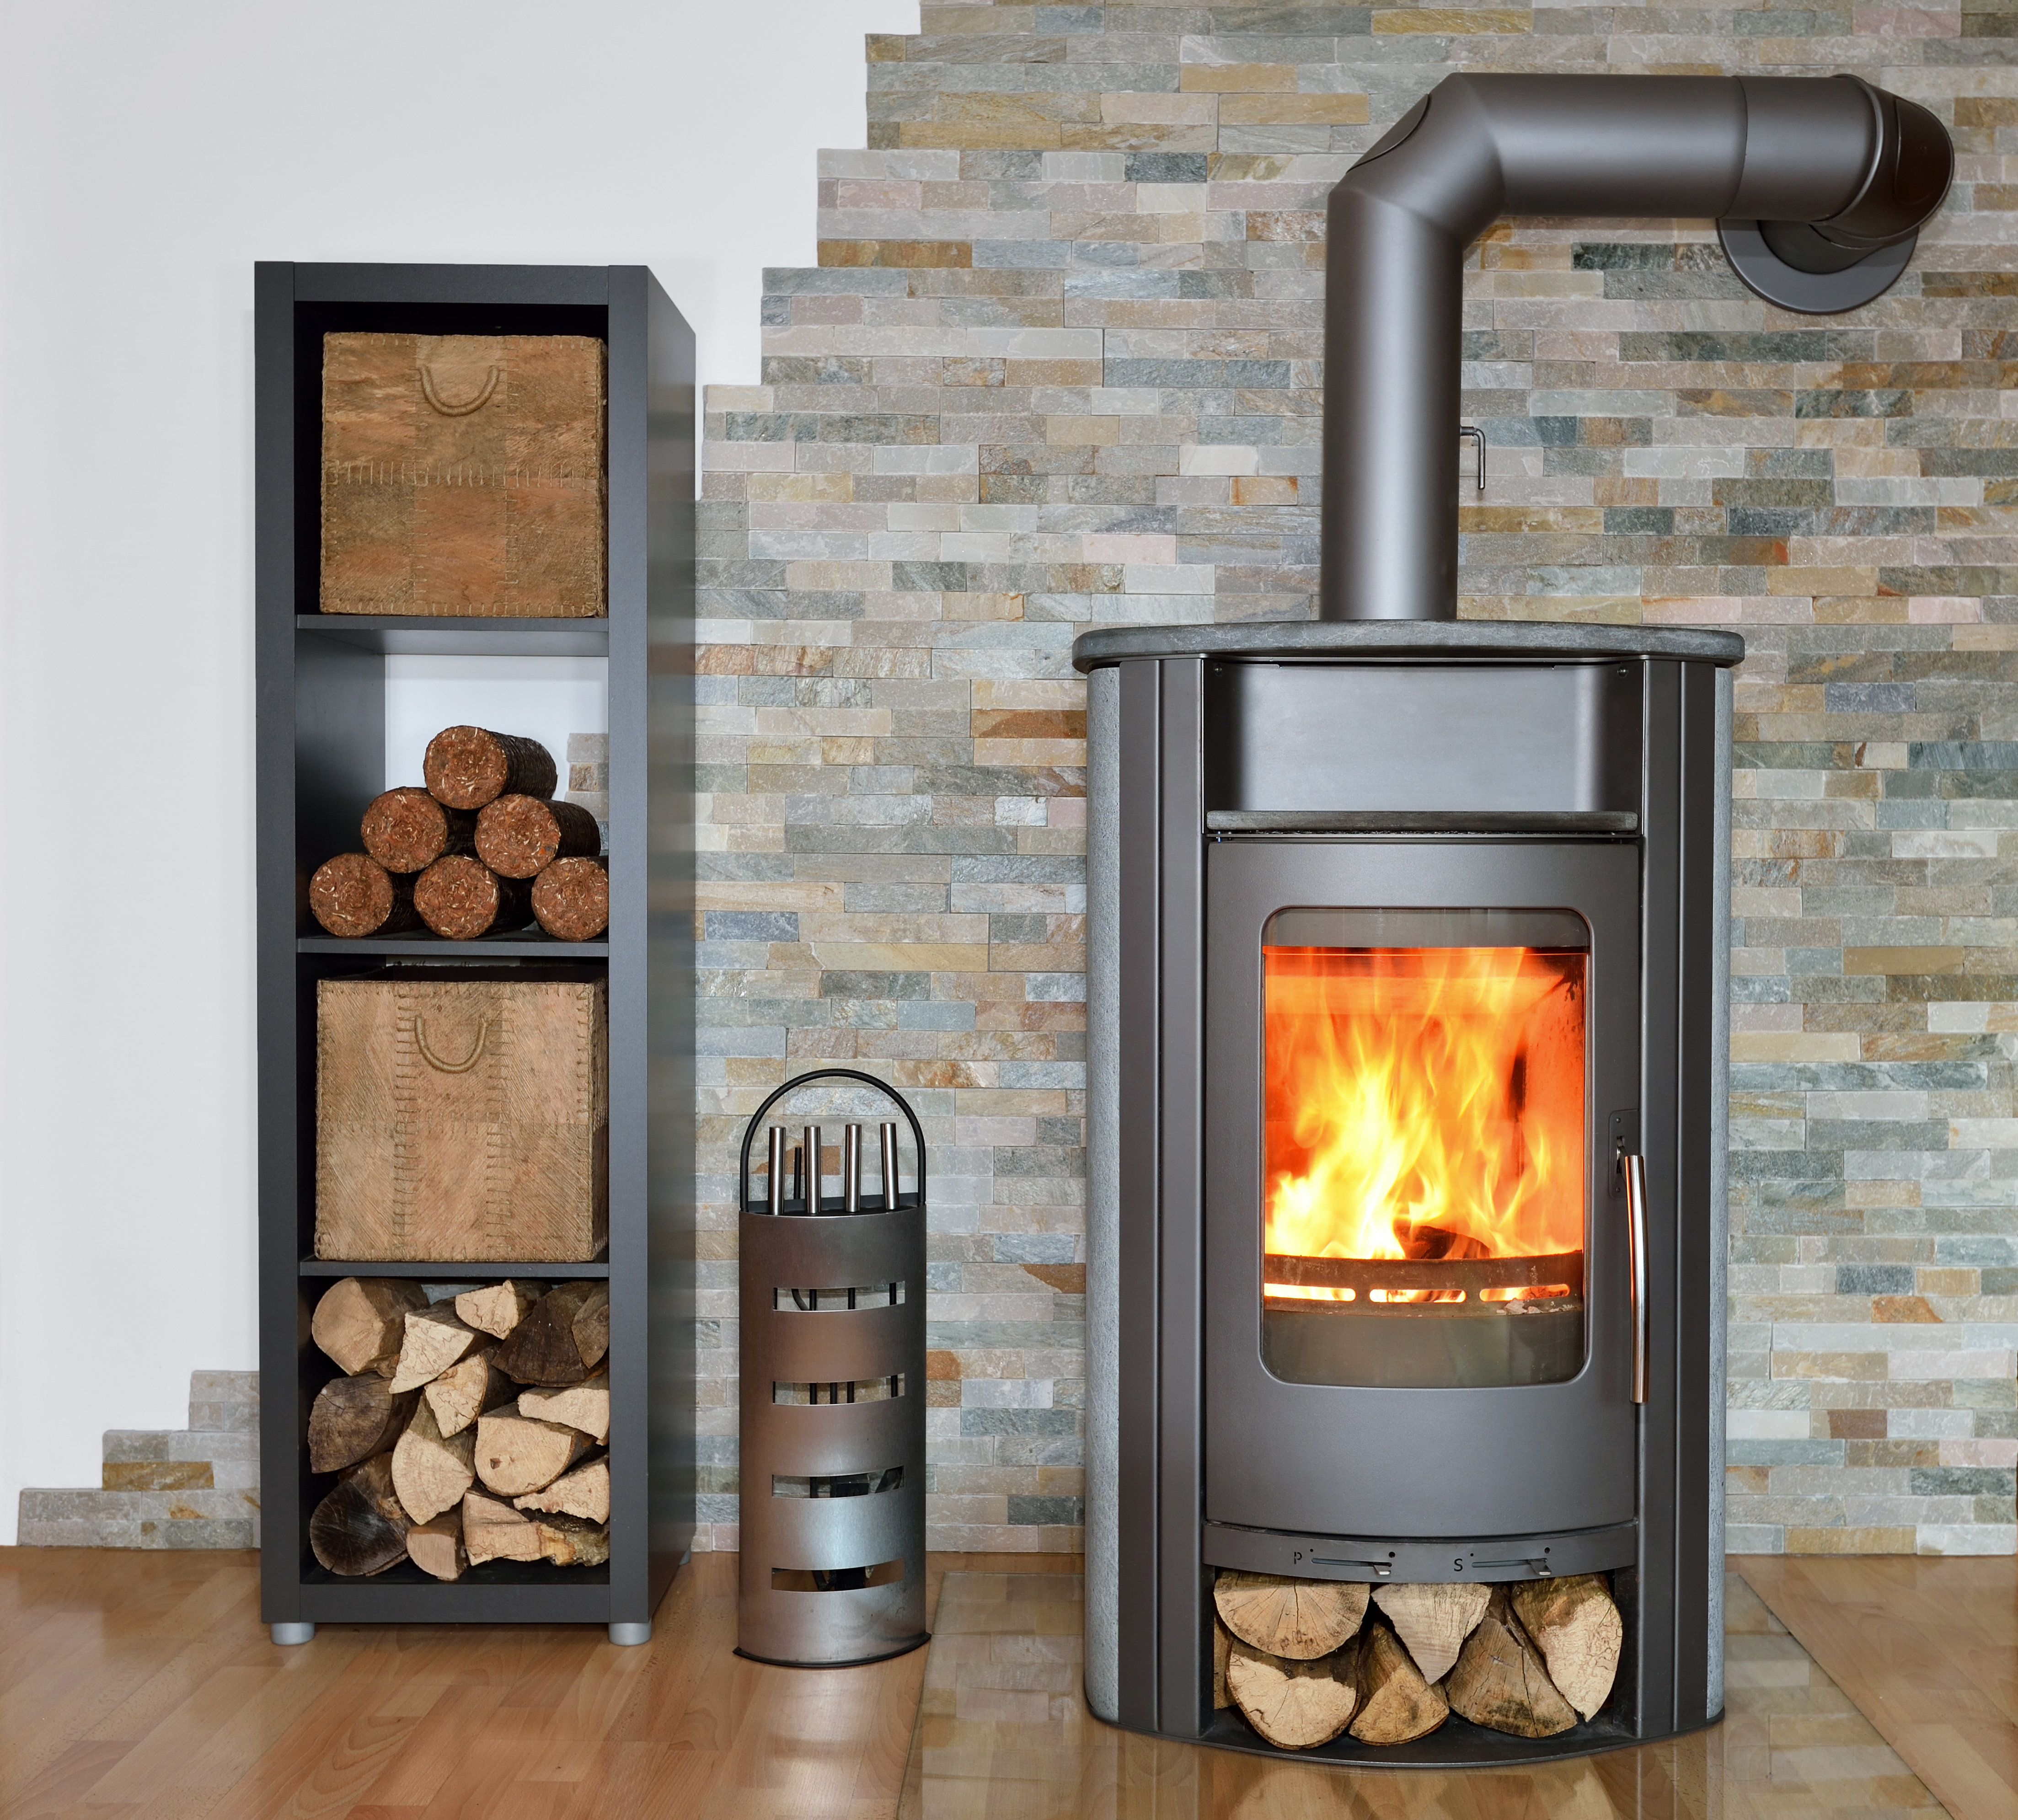 Why Log Burners Are Bad For You And The